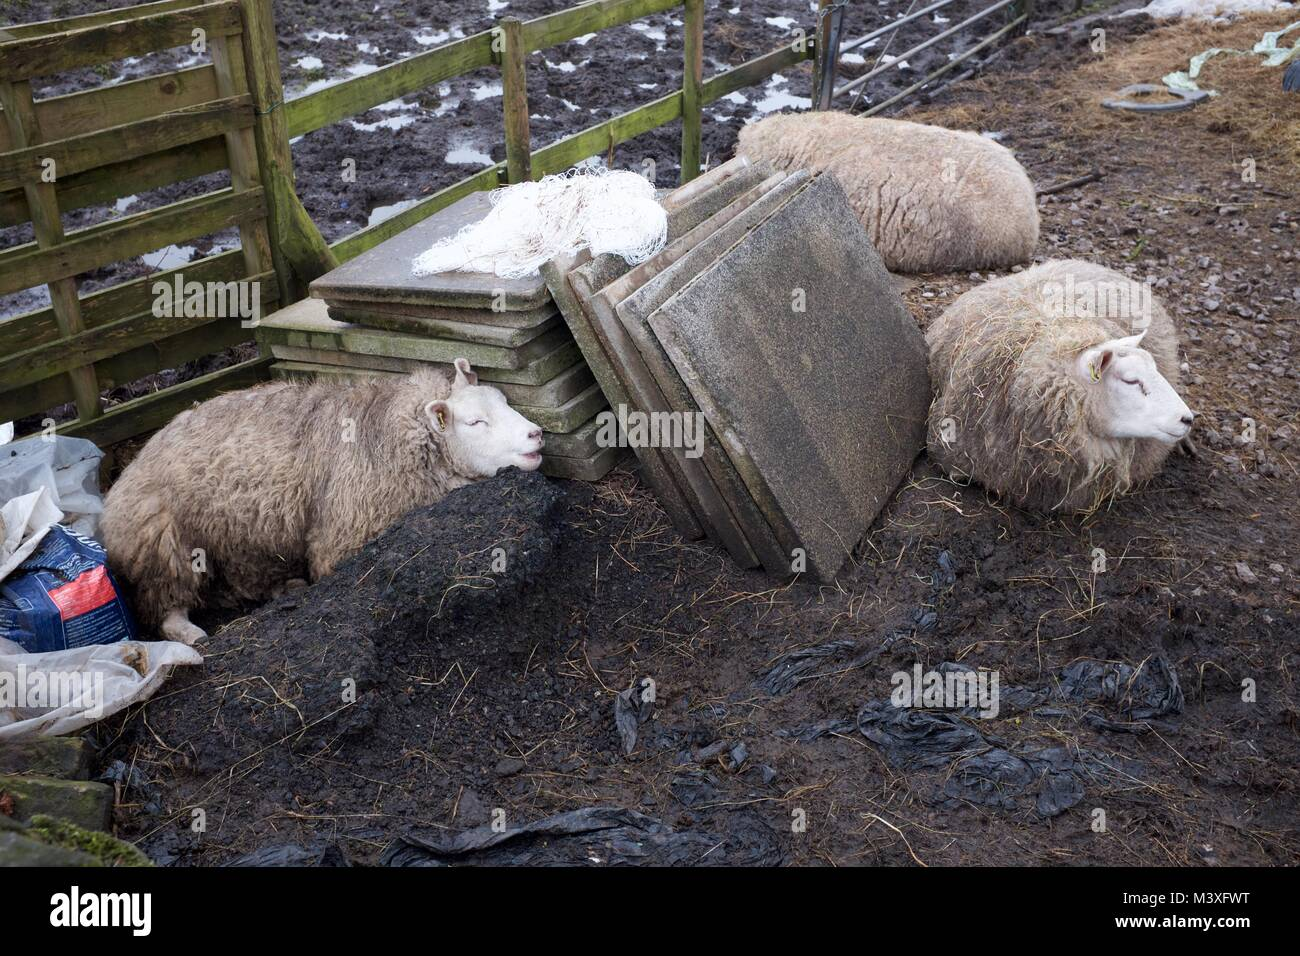 Two sheep in a confined space. in New Mills,  Derbyshire. - Stock Image